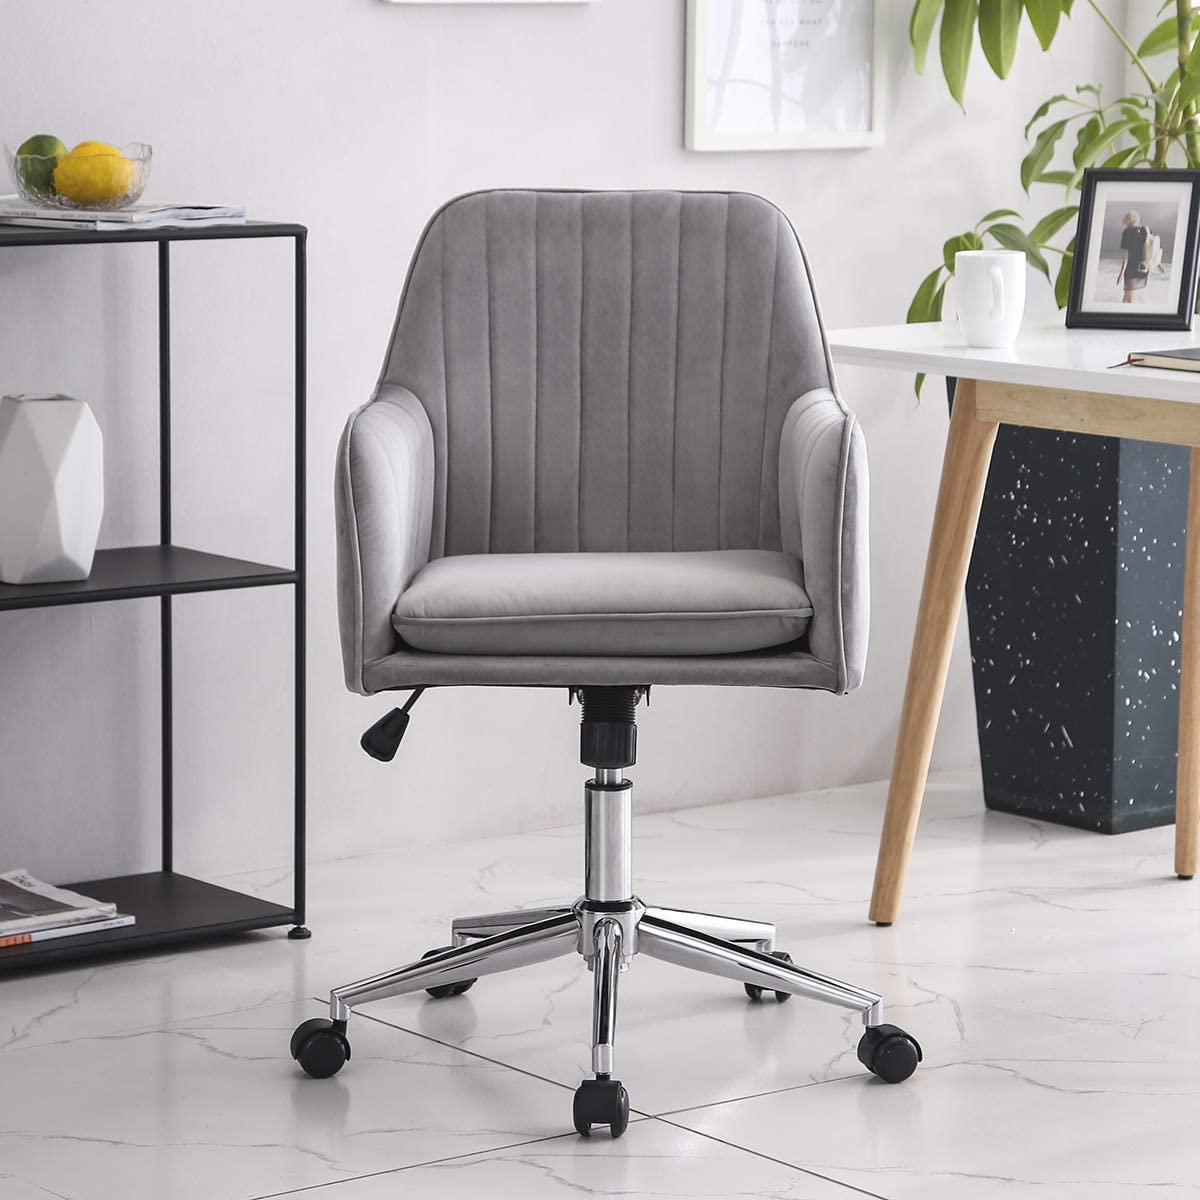 Vanimeu Grey Desk Chair Ergonomic Velvet Office Chair With Arms For Home 360 Swivel Computer Chair Padded Cushion Seat Tilt Function Adjustable Height Grey Amazon Co Uk Kitchen Home